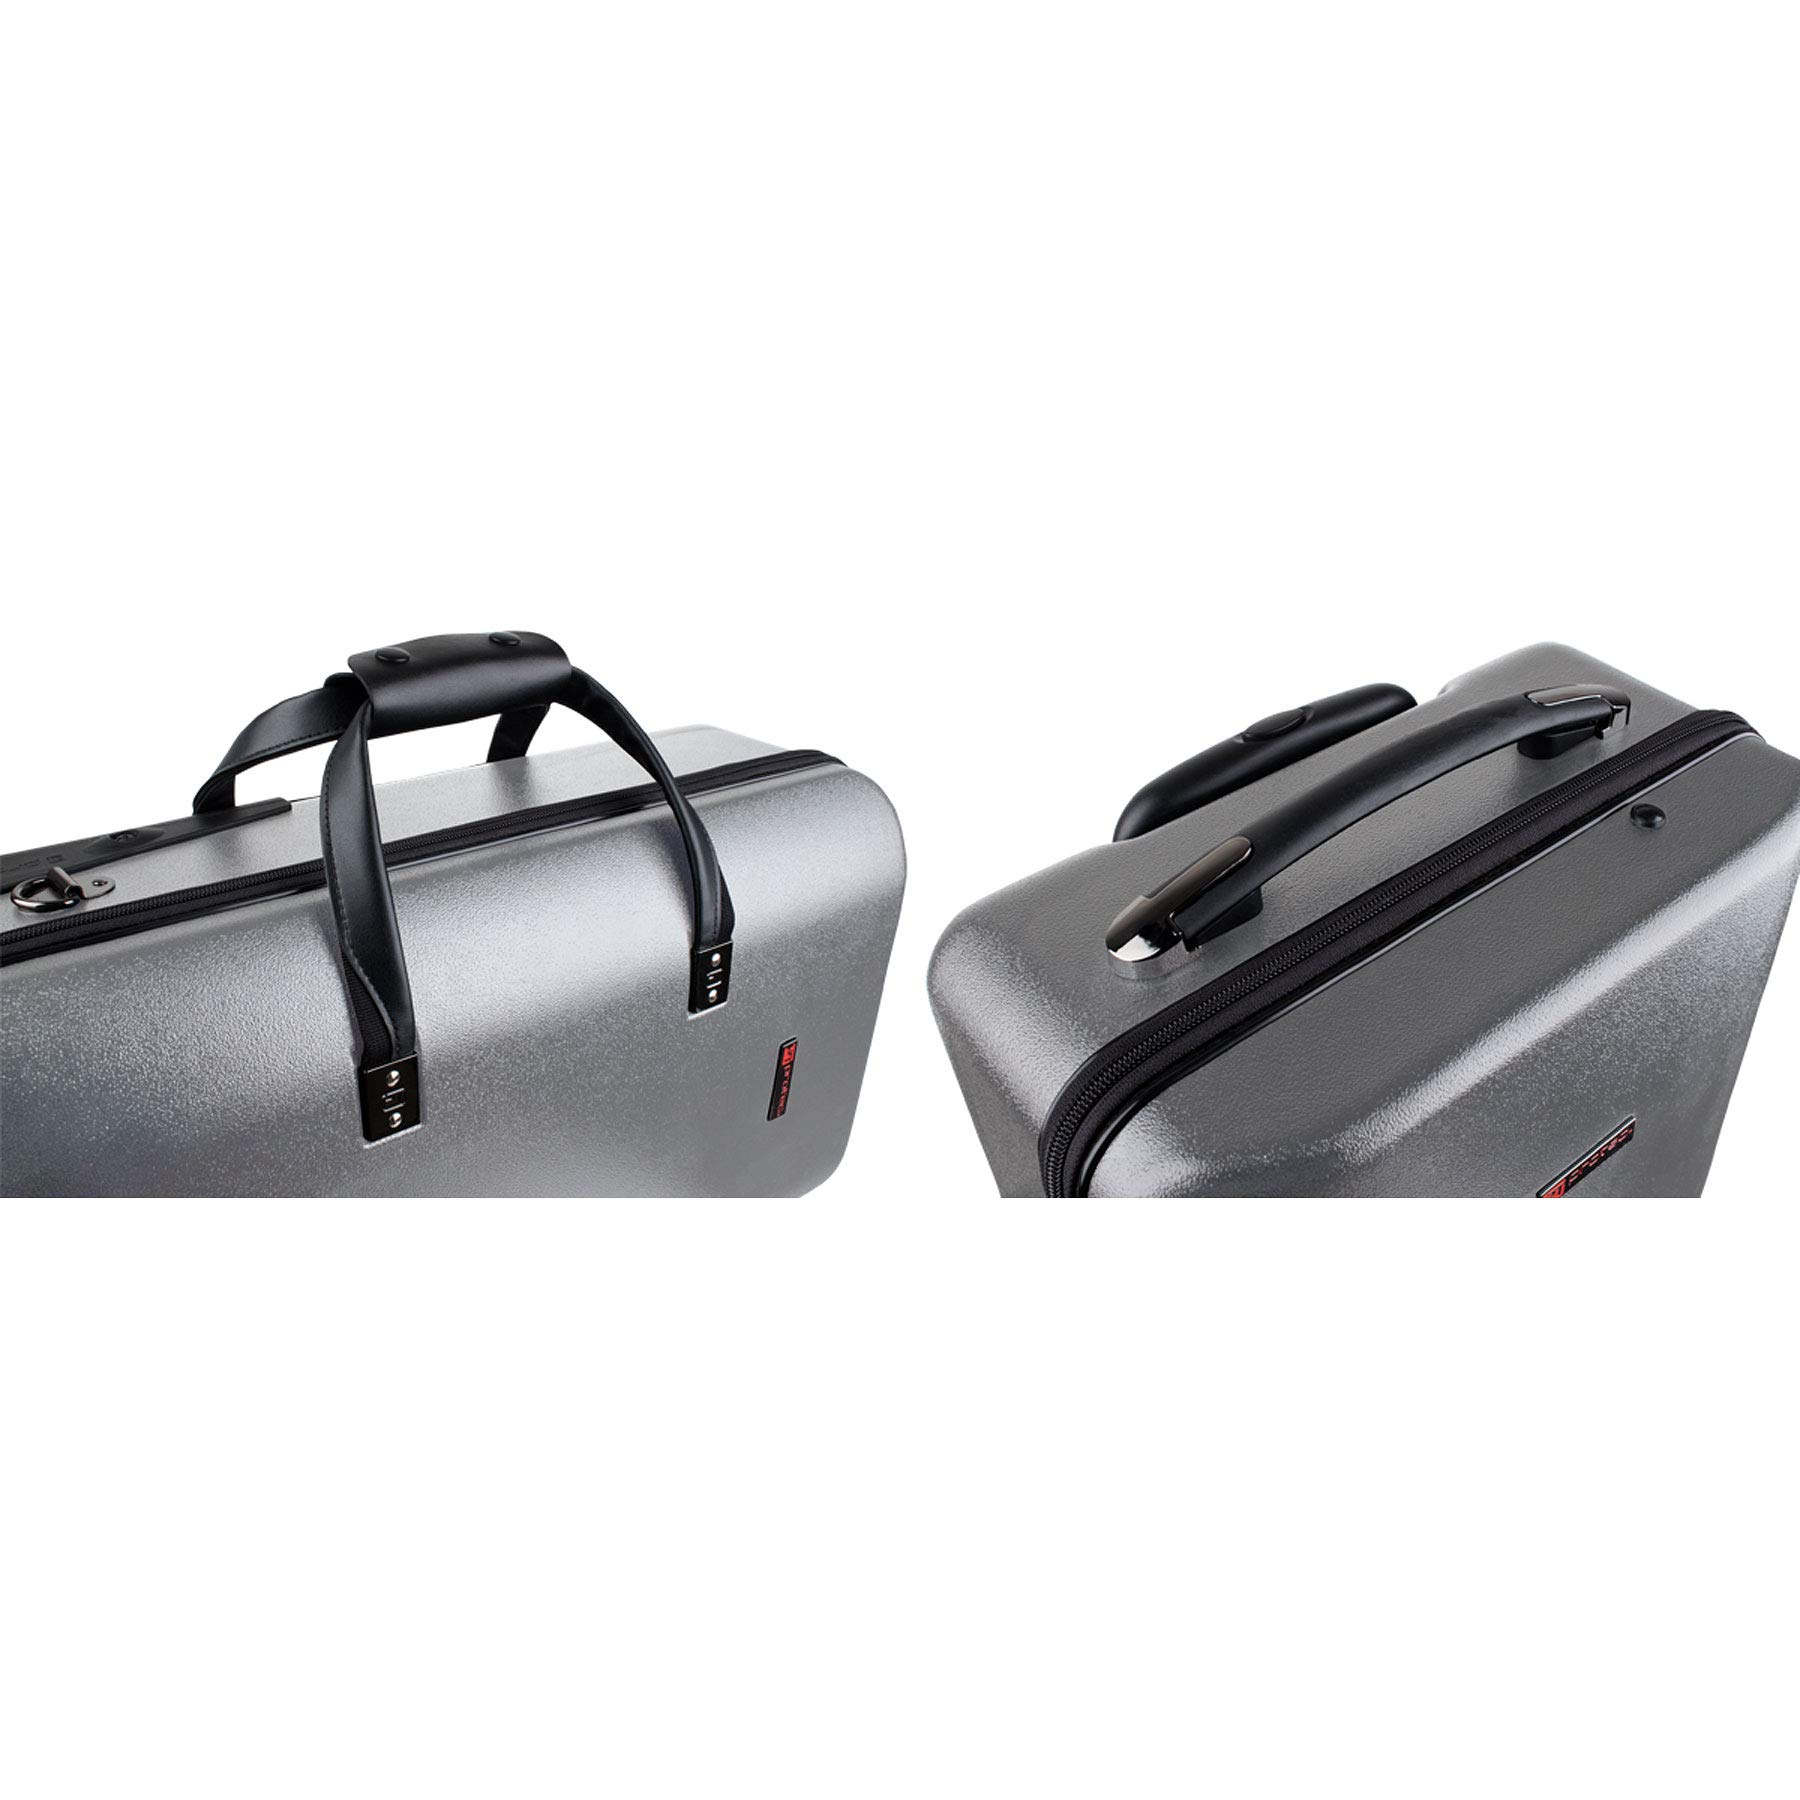 Protec Triple Trumpet Case with Wheels, Silver (BLT301TSX) by ProTec (Image #7)